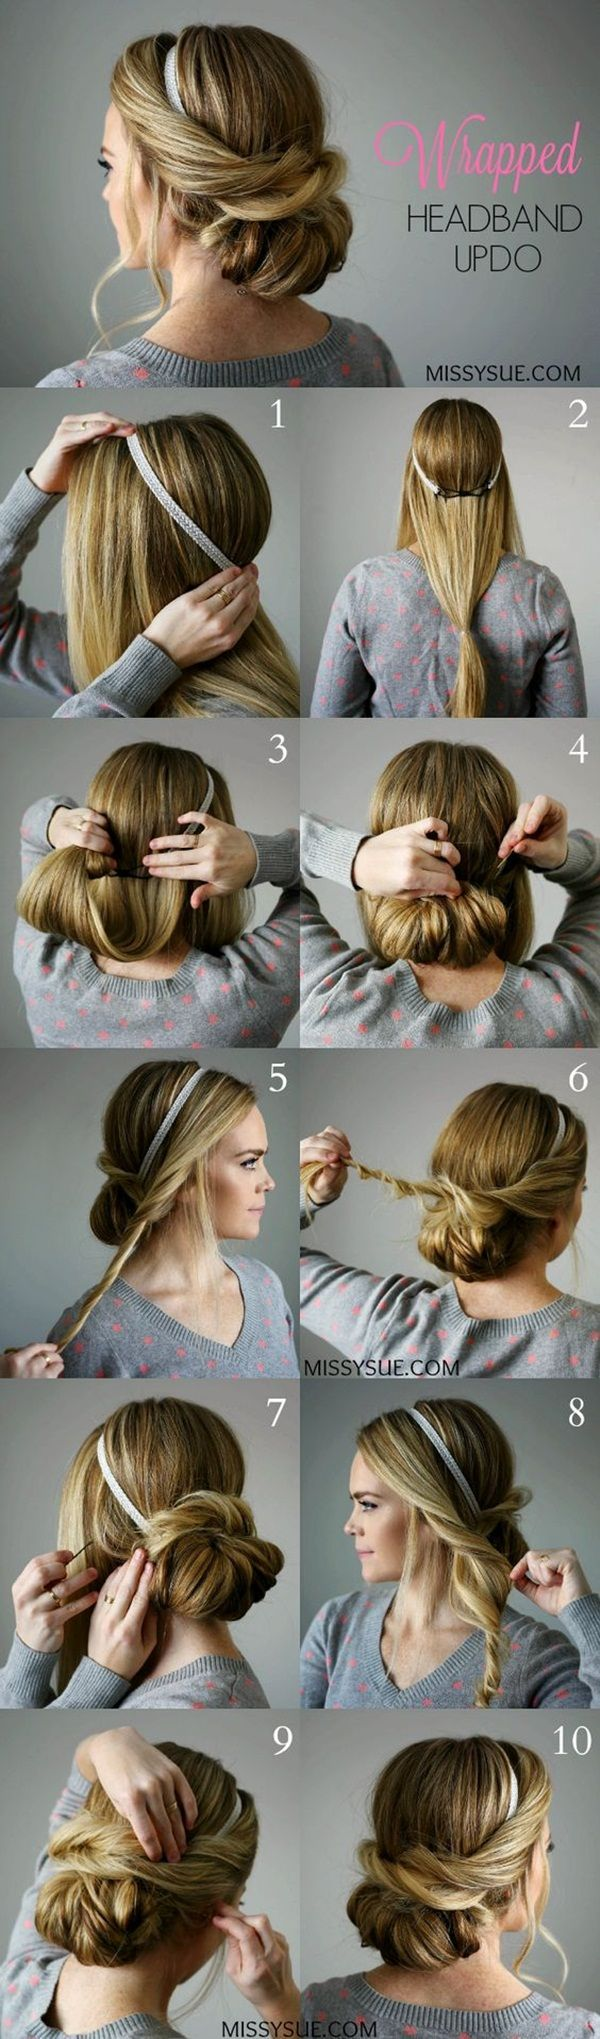 hair styles tutorials best 25 church hairstyles ideas on 2289 | 732e6c87545017c87870d914becb2289 easy hairstyles for school school outfits